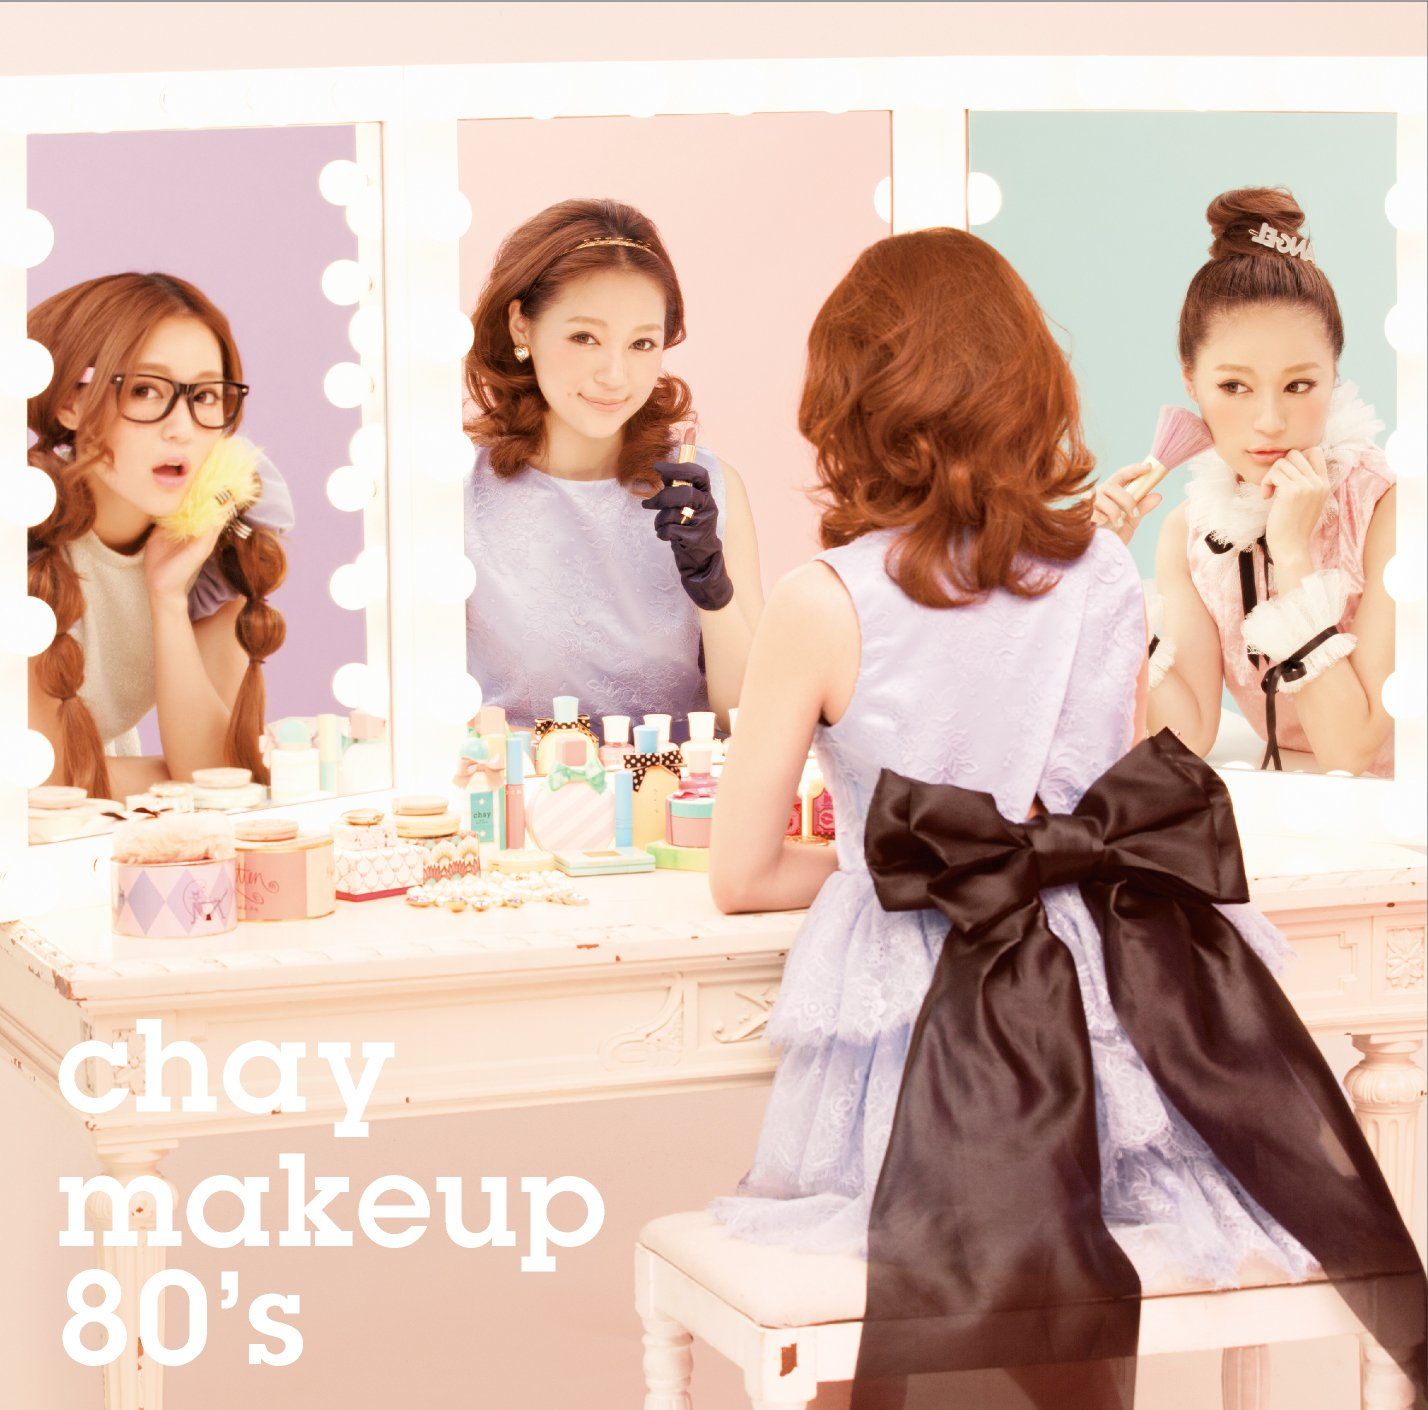 20160720.01.01 chay - makeup 80's cover.jpg